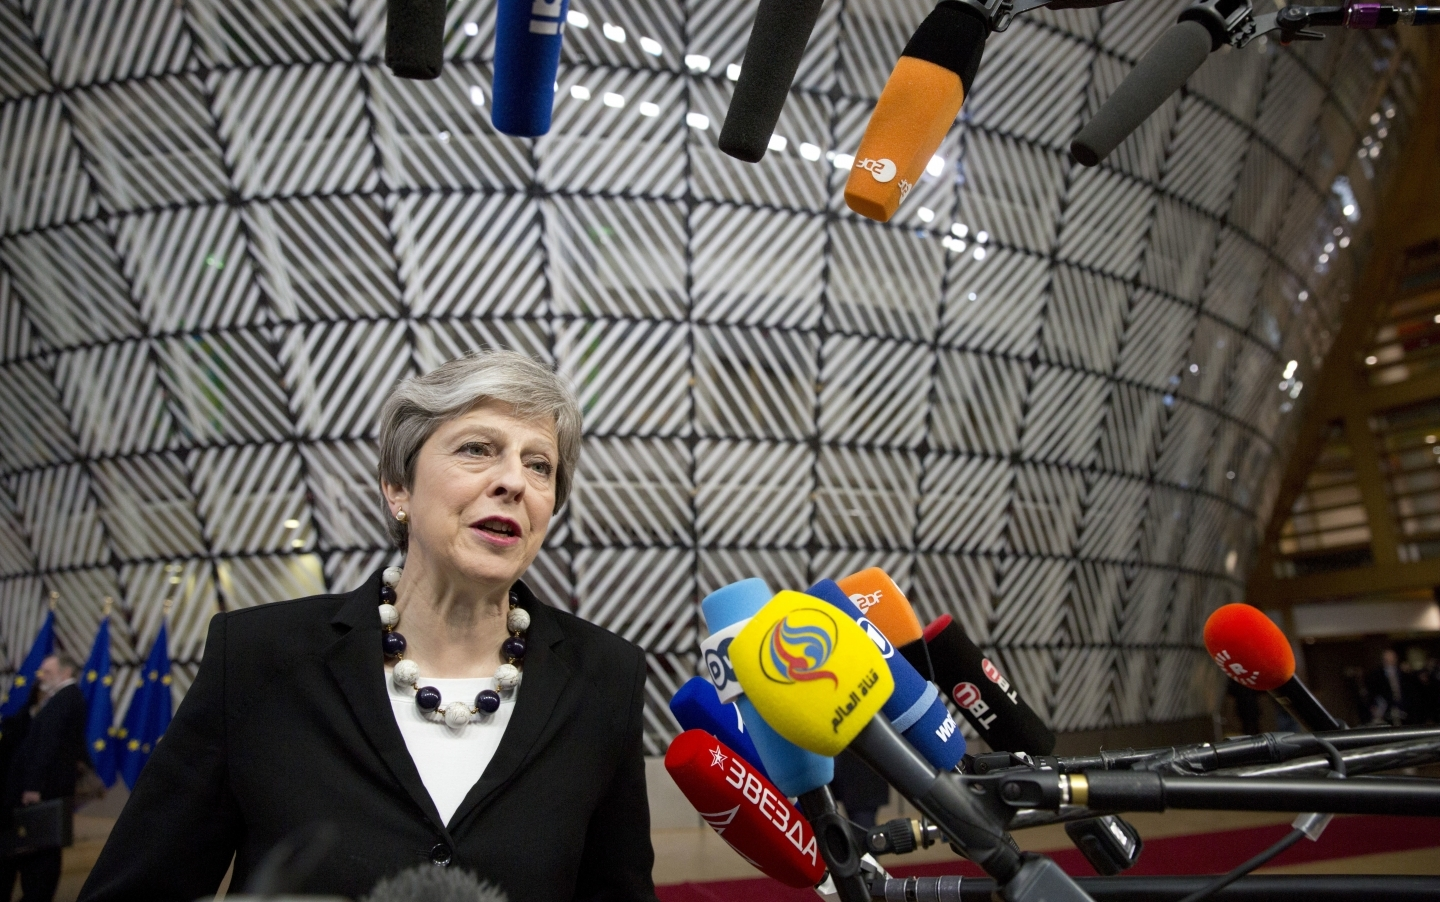 British Prime Minister Theresa May speaks with the media as she arrives for an EU summit at the Europa building in Brussels on March 23, 2018. (AP Photo/Virginia Mayo)